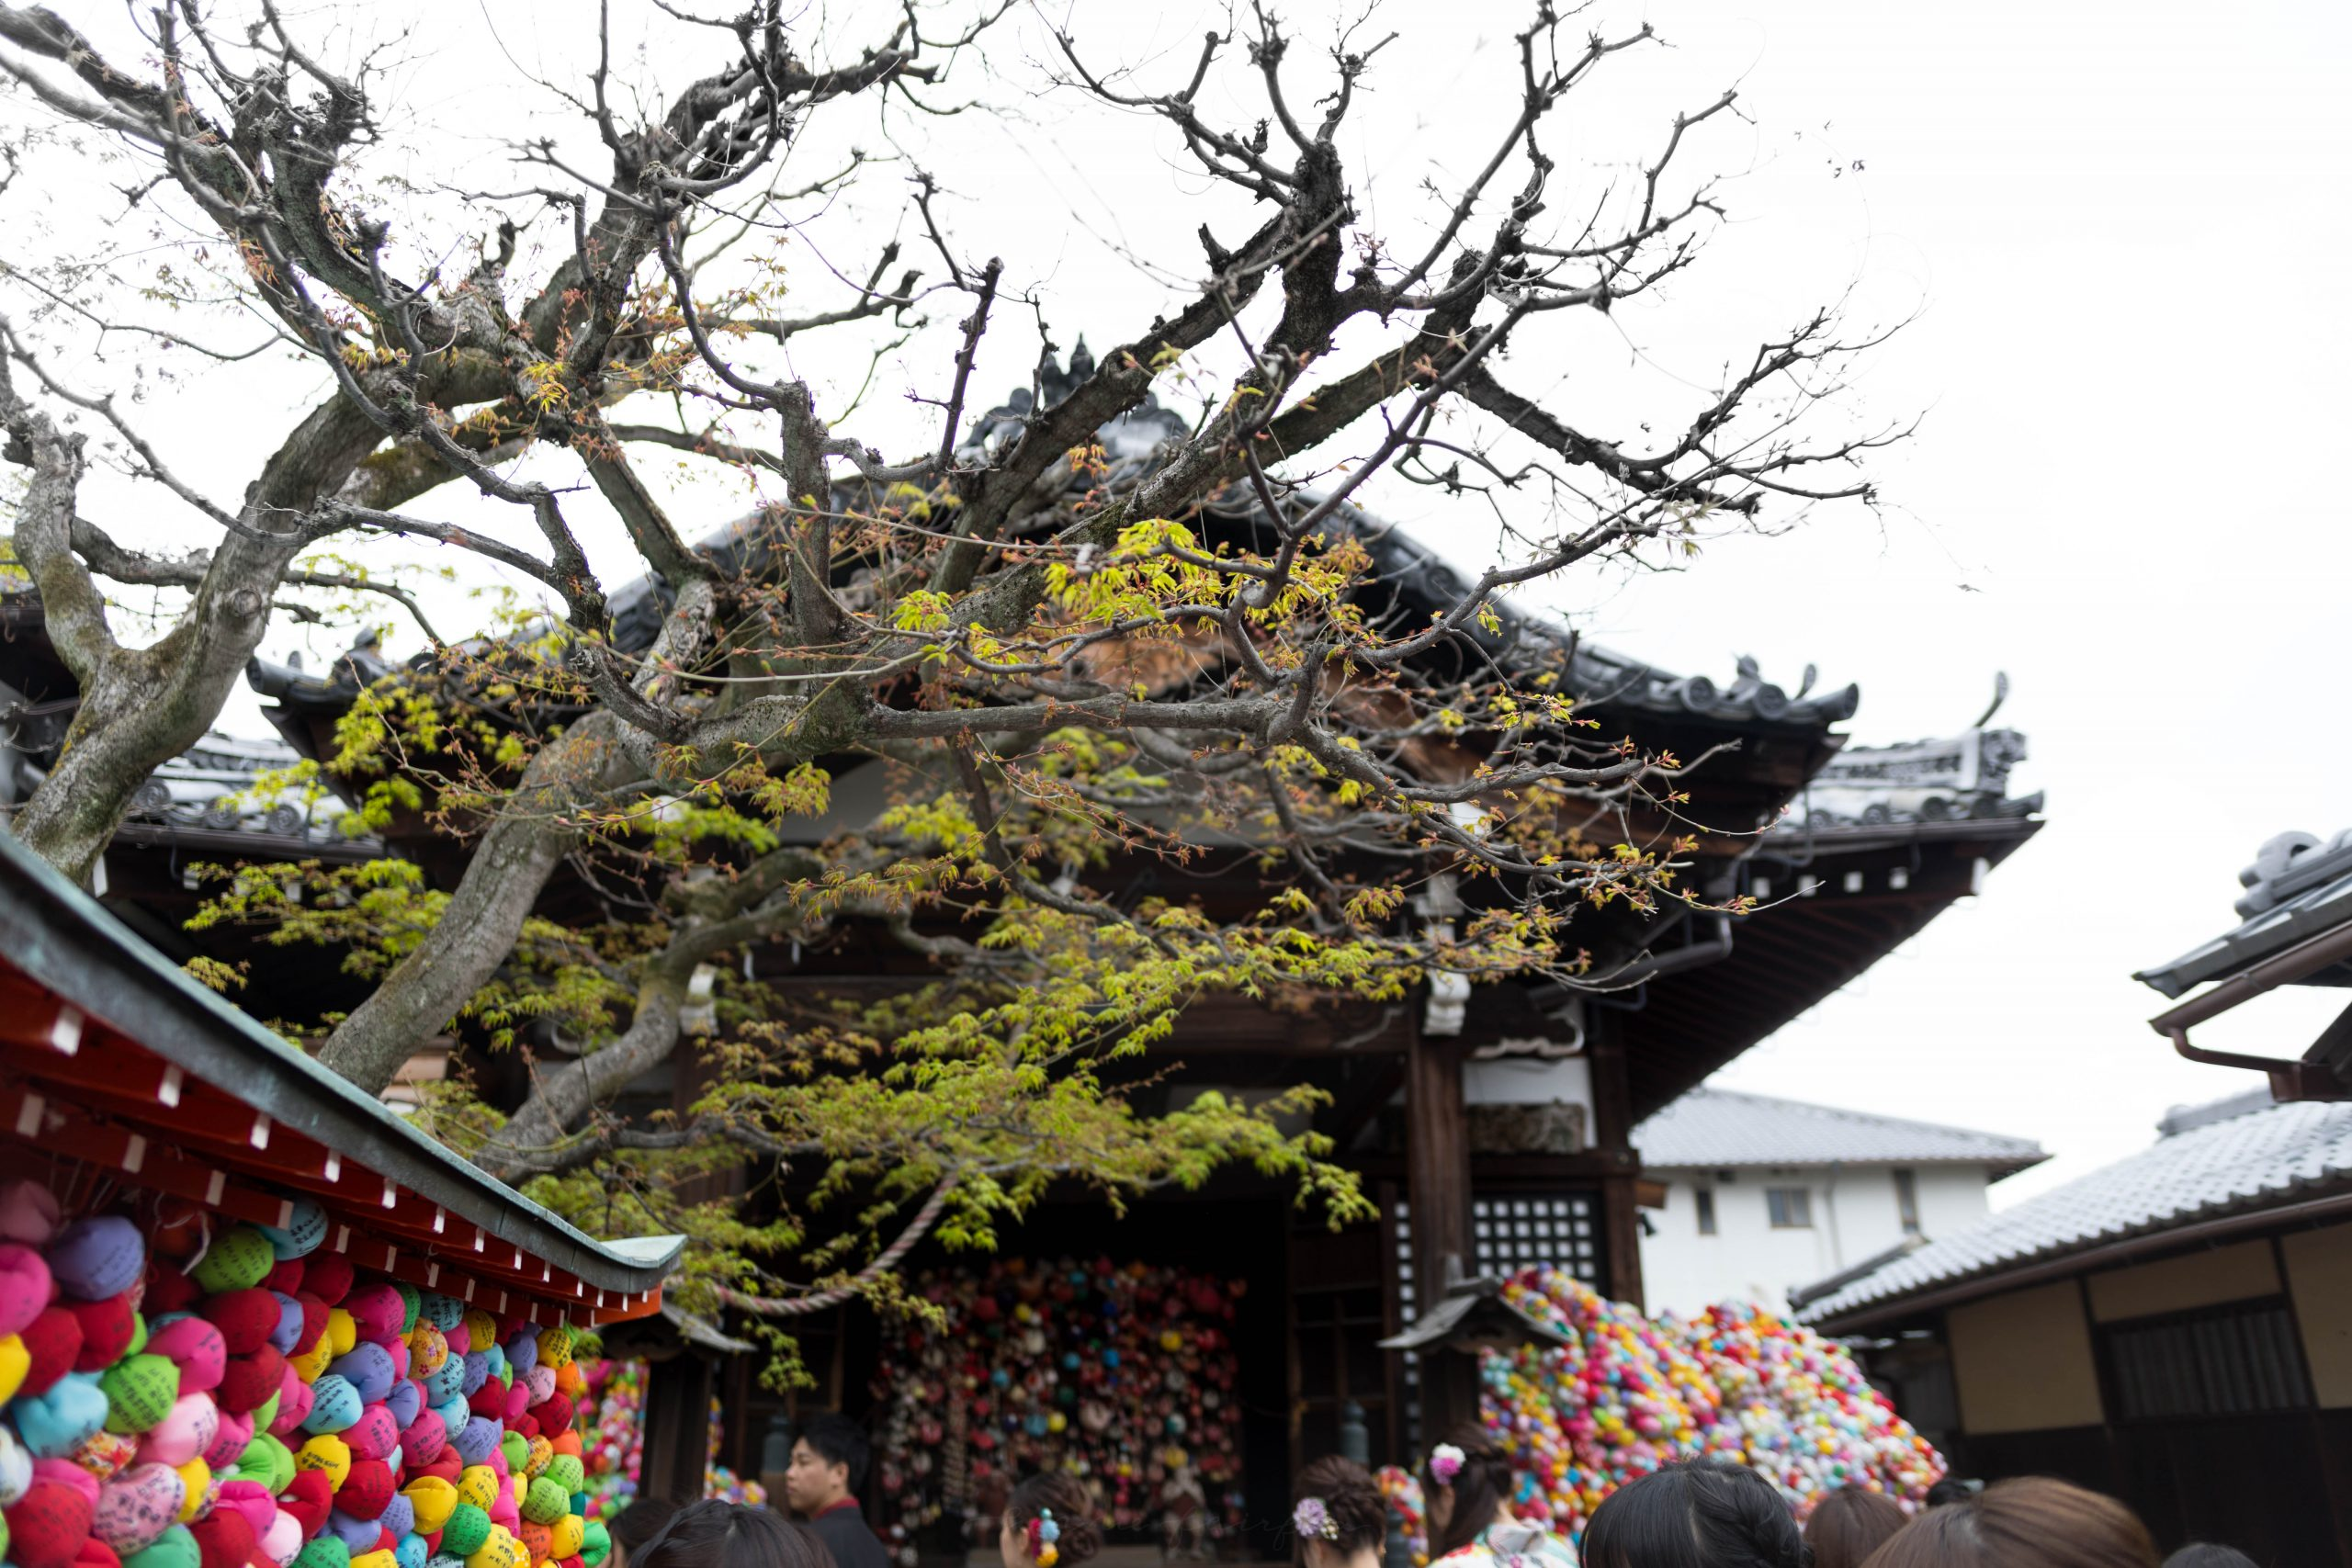 Colorful Ball Temple Yasaka Koshin-Do Temple in Kyoto, Japan's Higashiyama District by Annie Fairfax